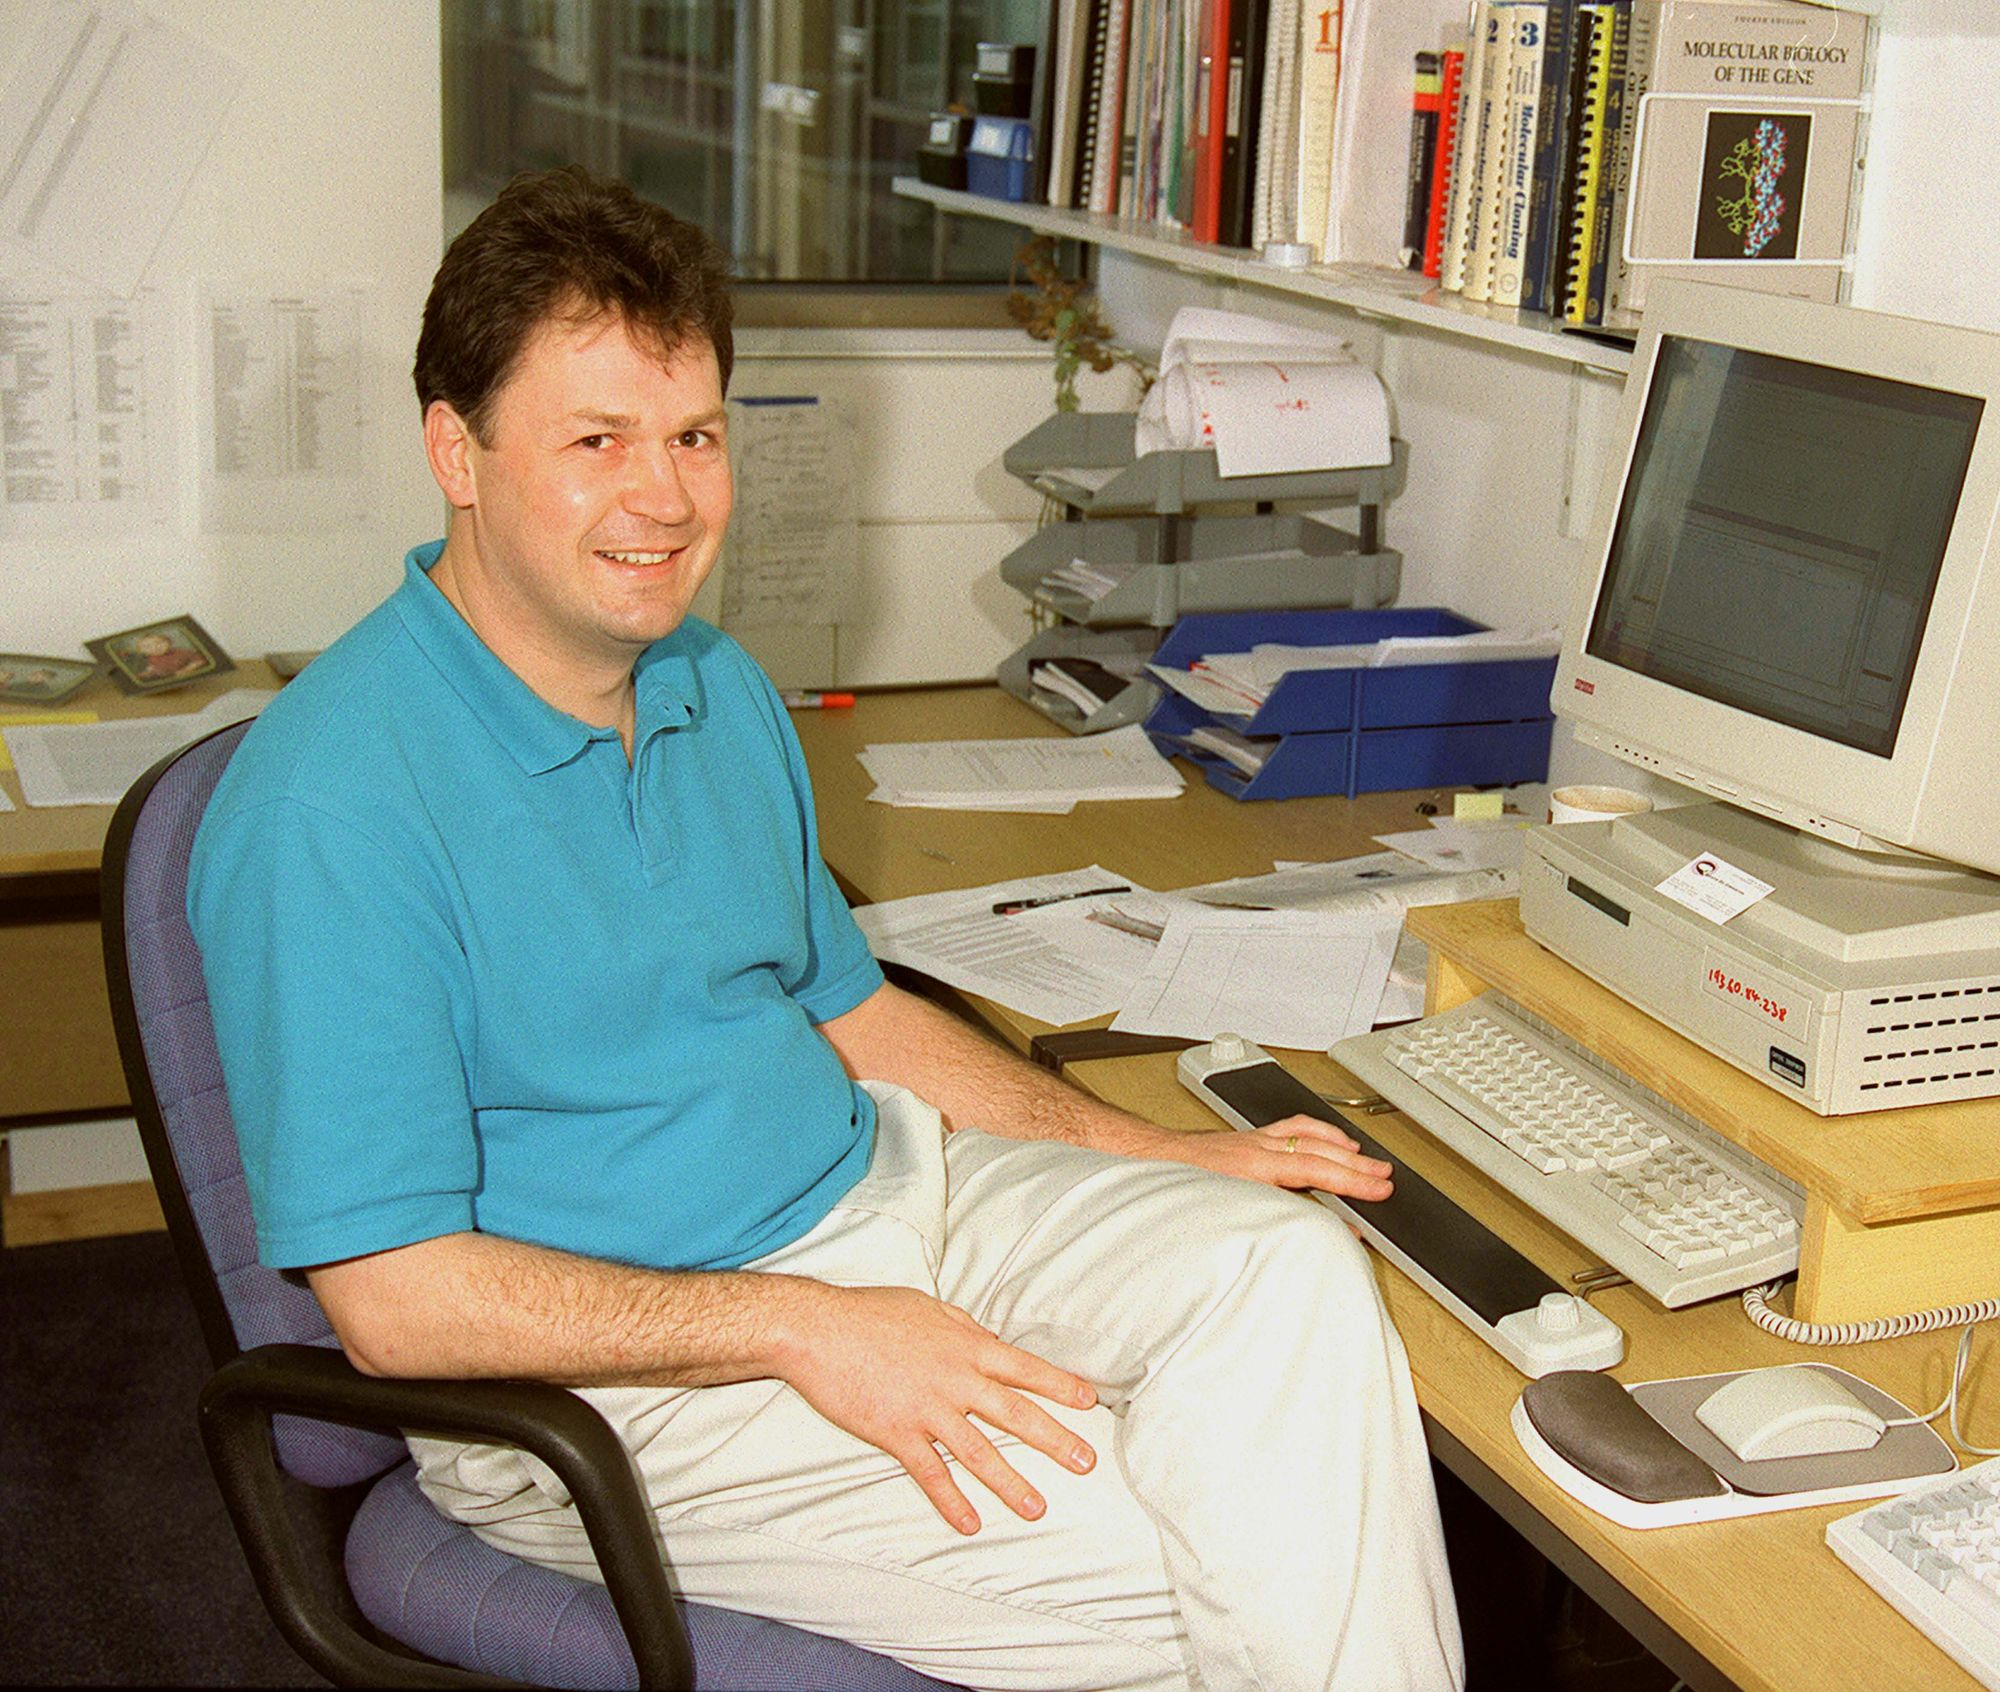 Male person in a blue polo sitting at a desk with a computer and papers, smiling at the camera